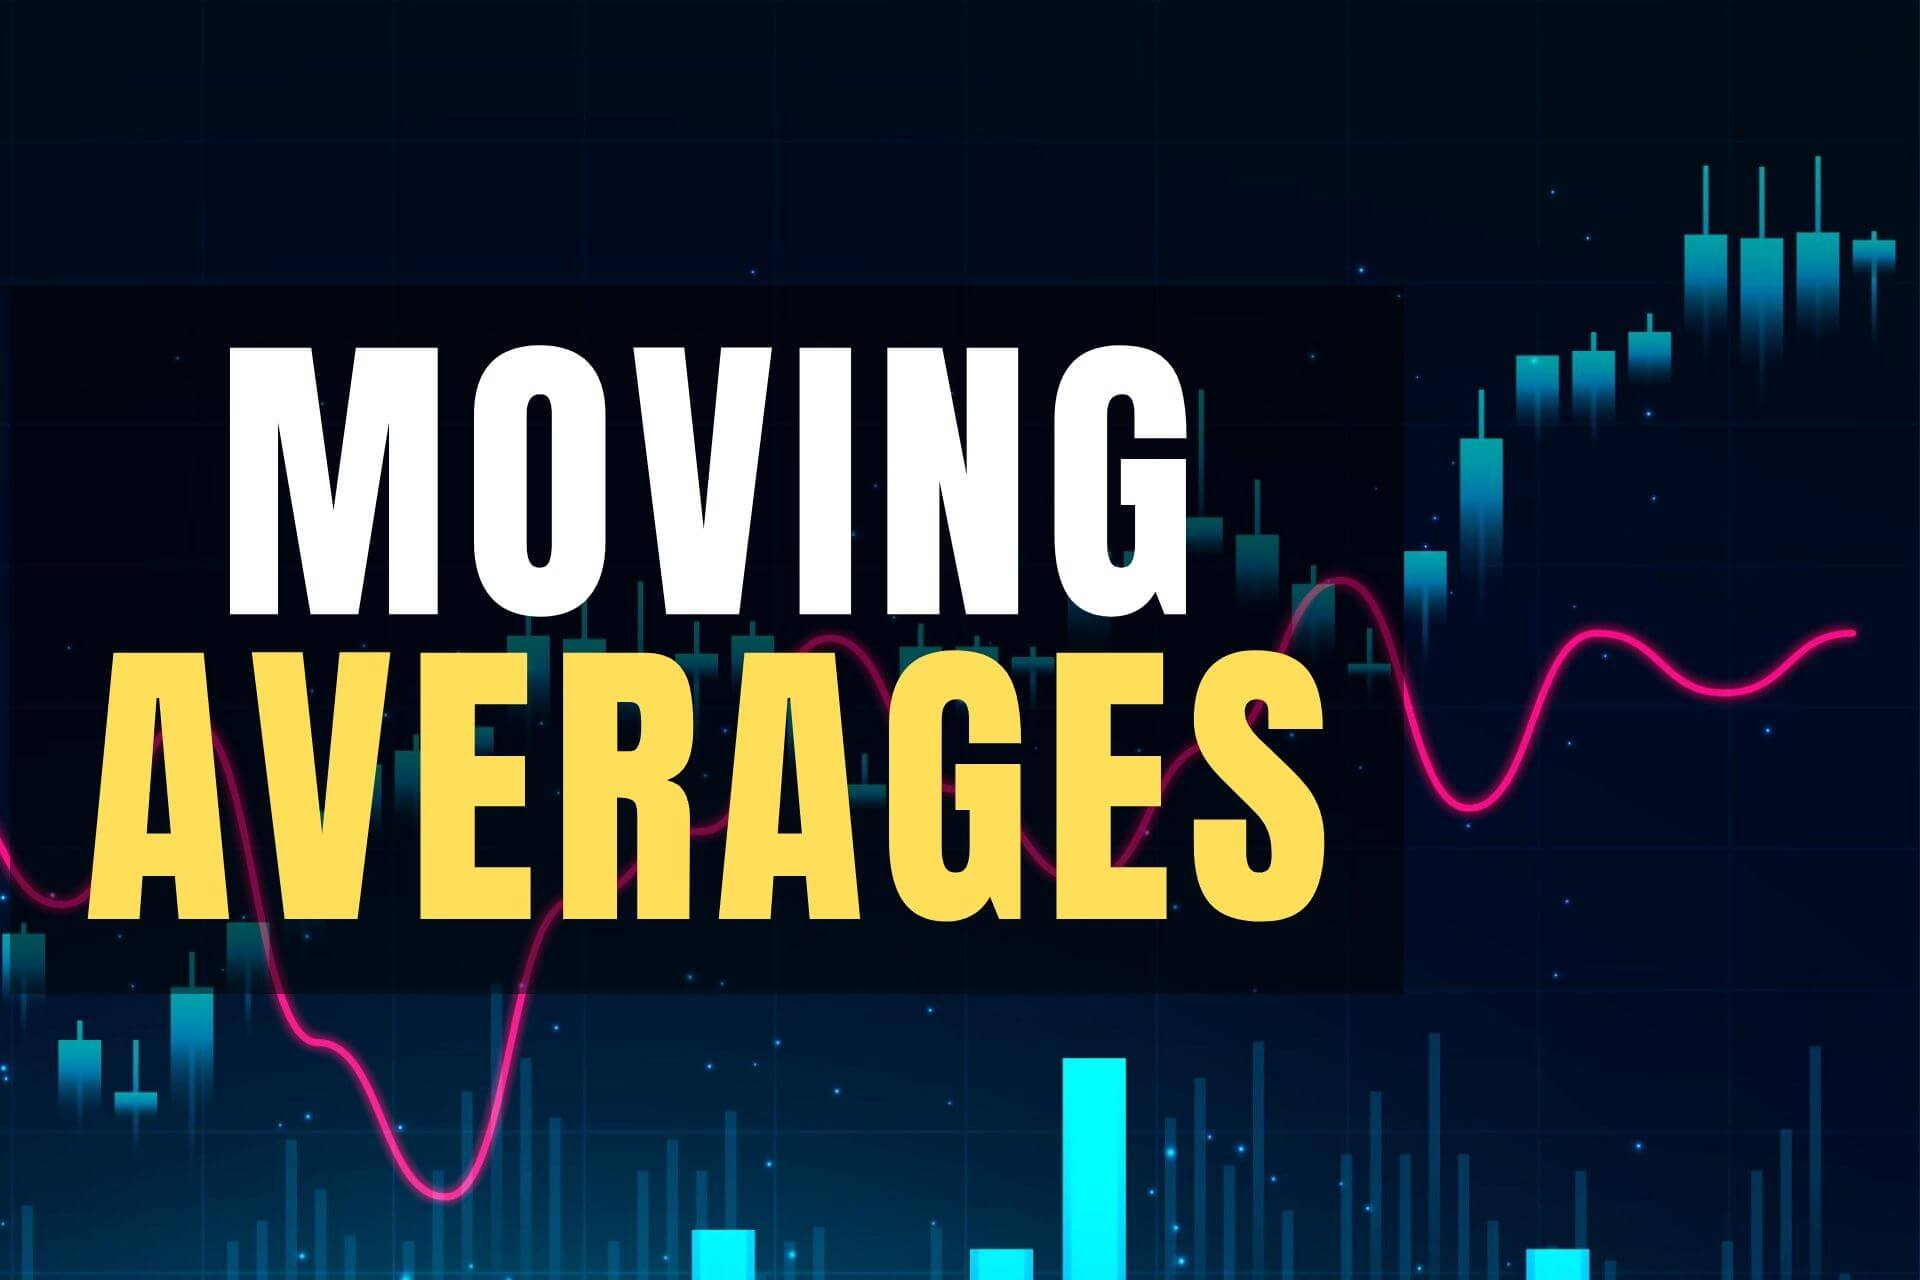 What are Moving Averages And how to use them